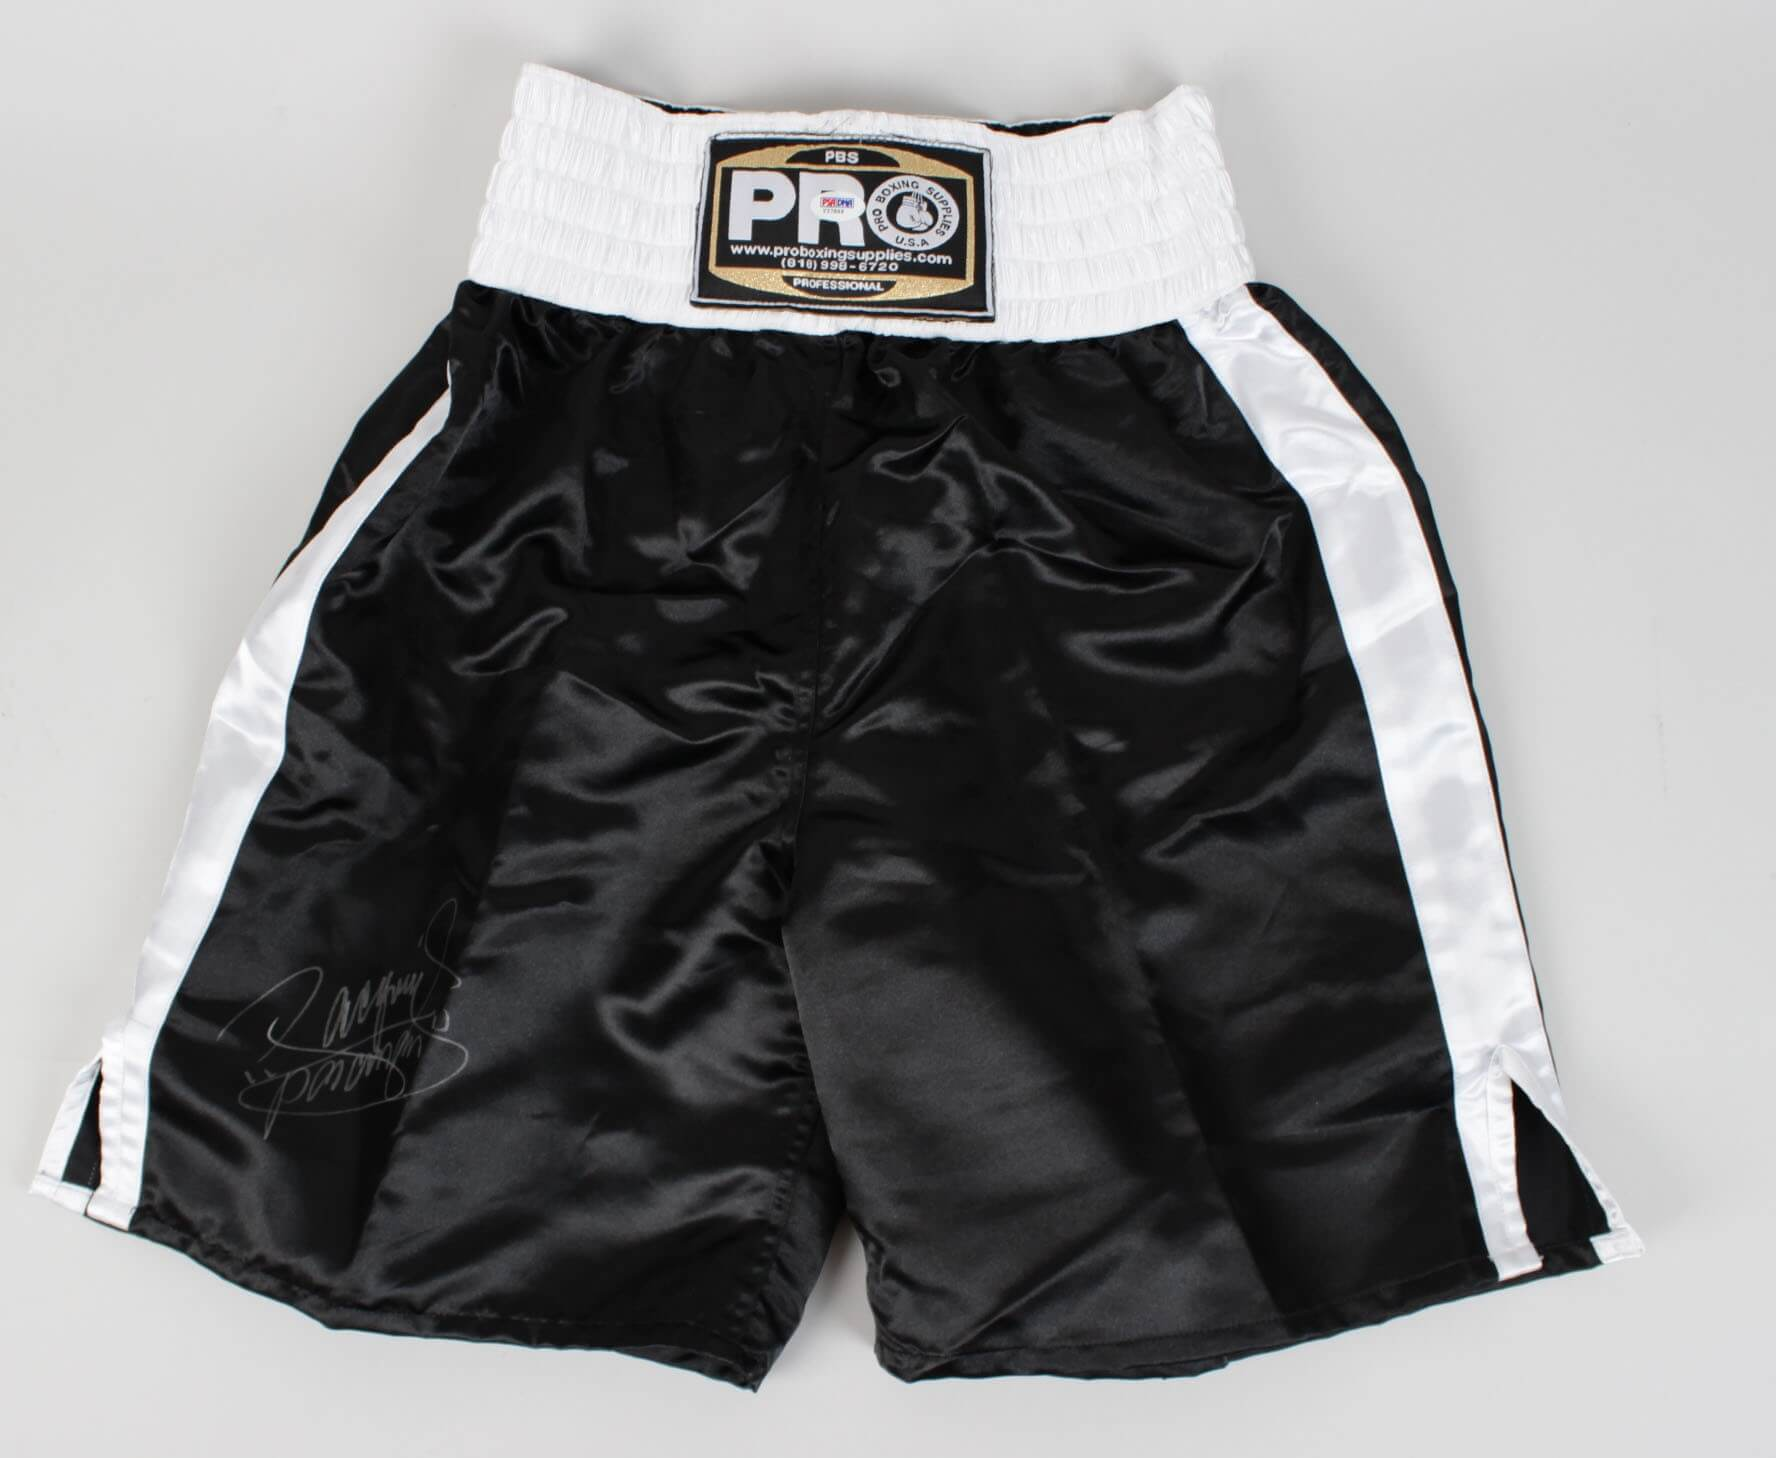 Manny Pacquiao Signed  Pro Boxing  Trunks (PSA)86210_01